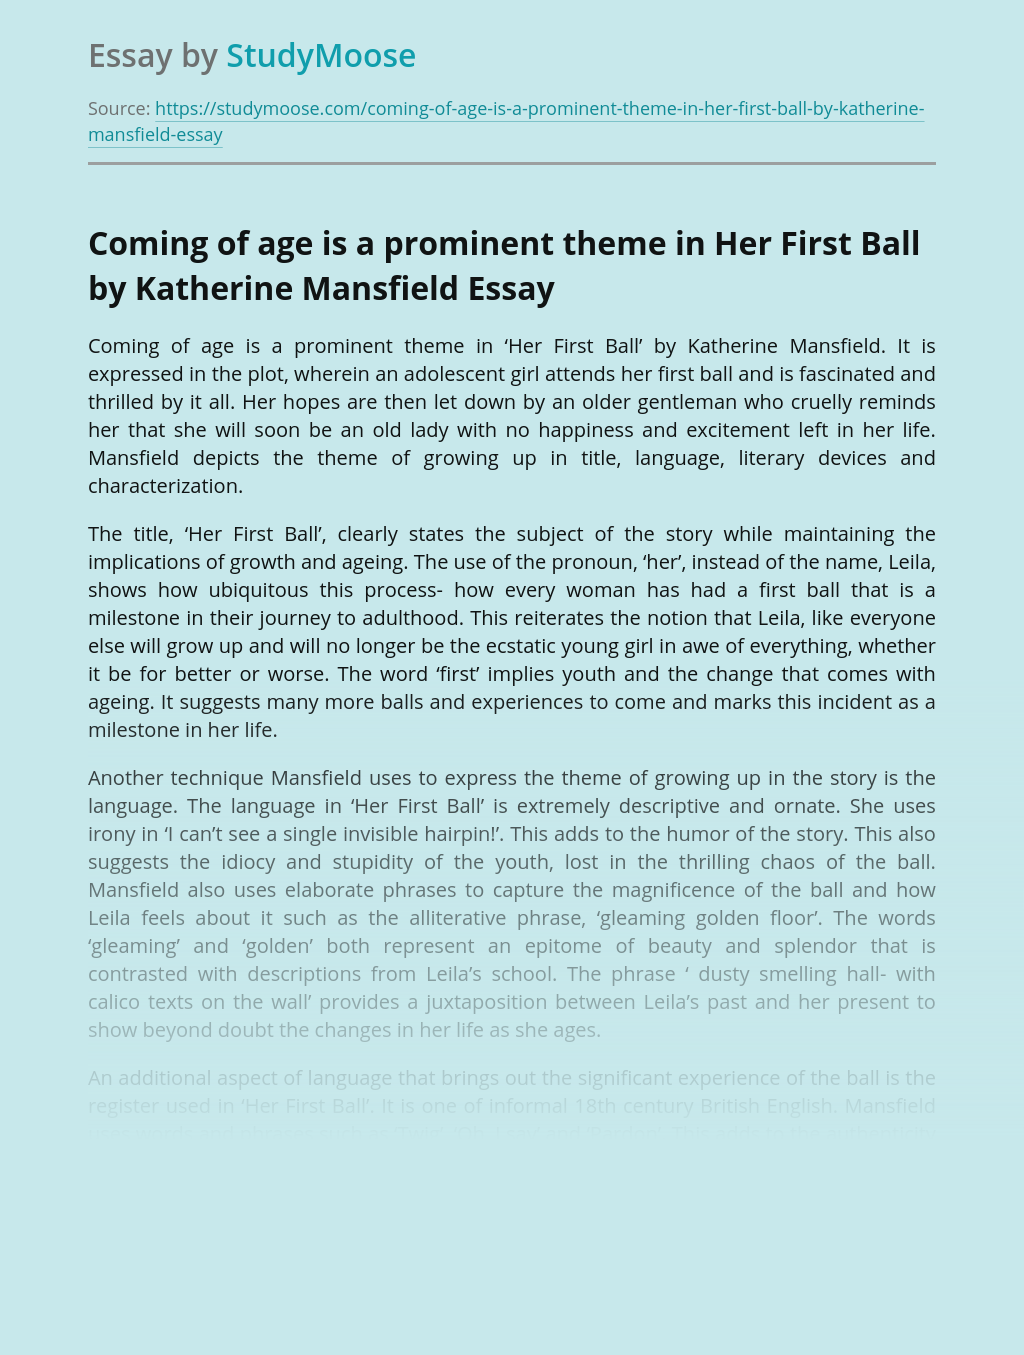 Coming of age is a prominent theme in Her First Ball by Katherine Mansfield